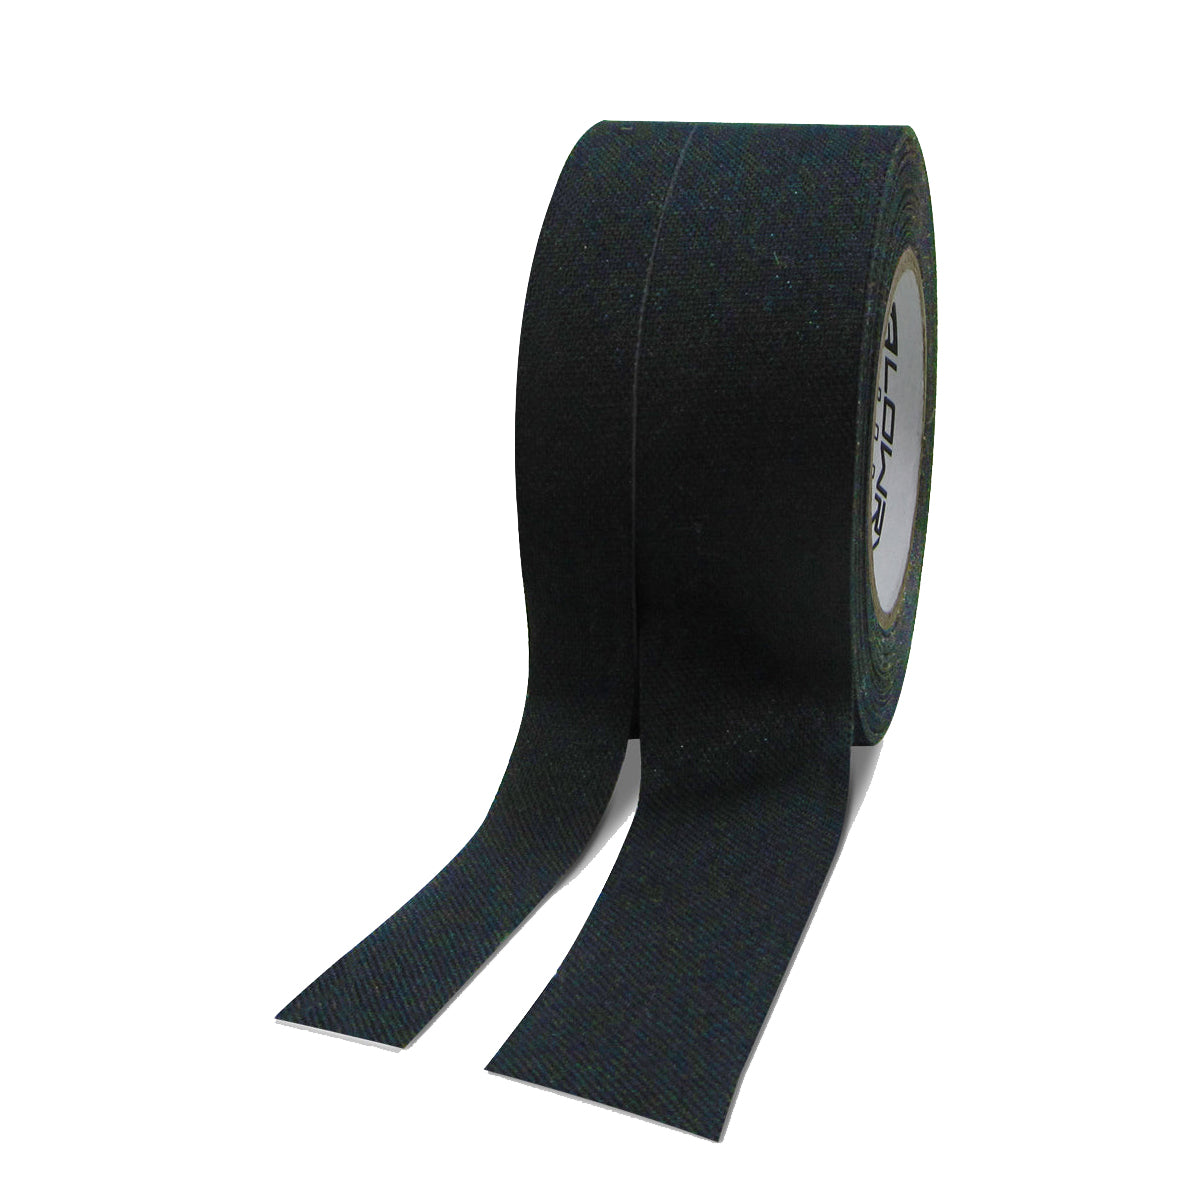 Lowry Sports Pro-Grade Black Hockey Stick Tape - Split Cut